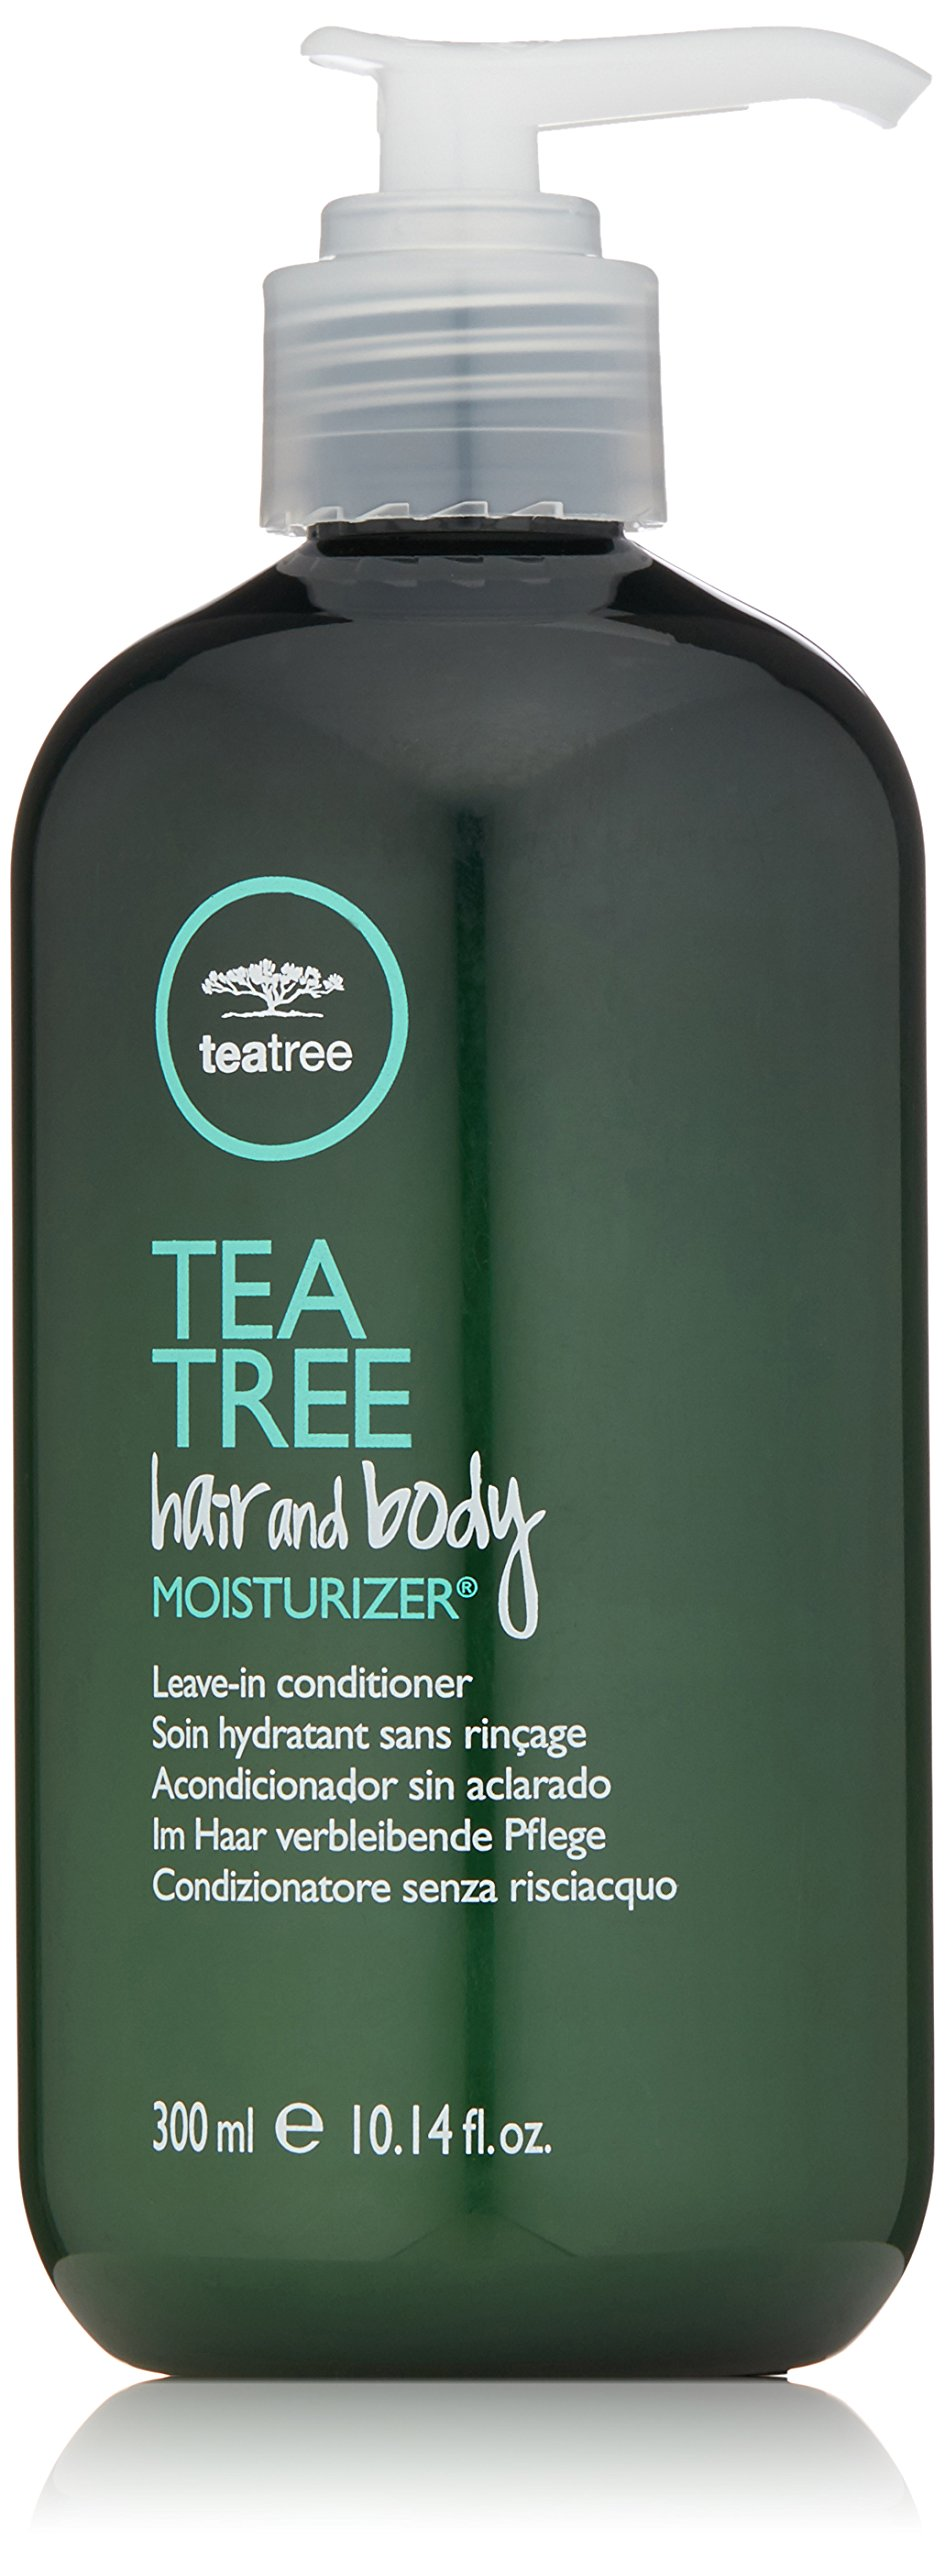 Tea Tree Hair and Body Moisturizer, 10.14 Fl Oz by Tea Tree